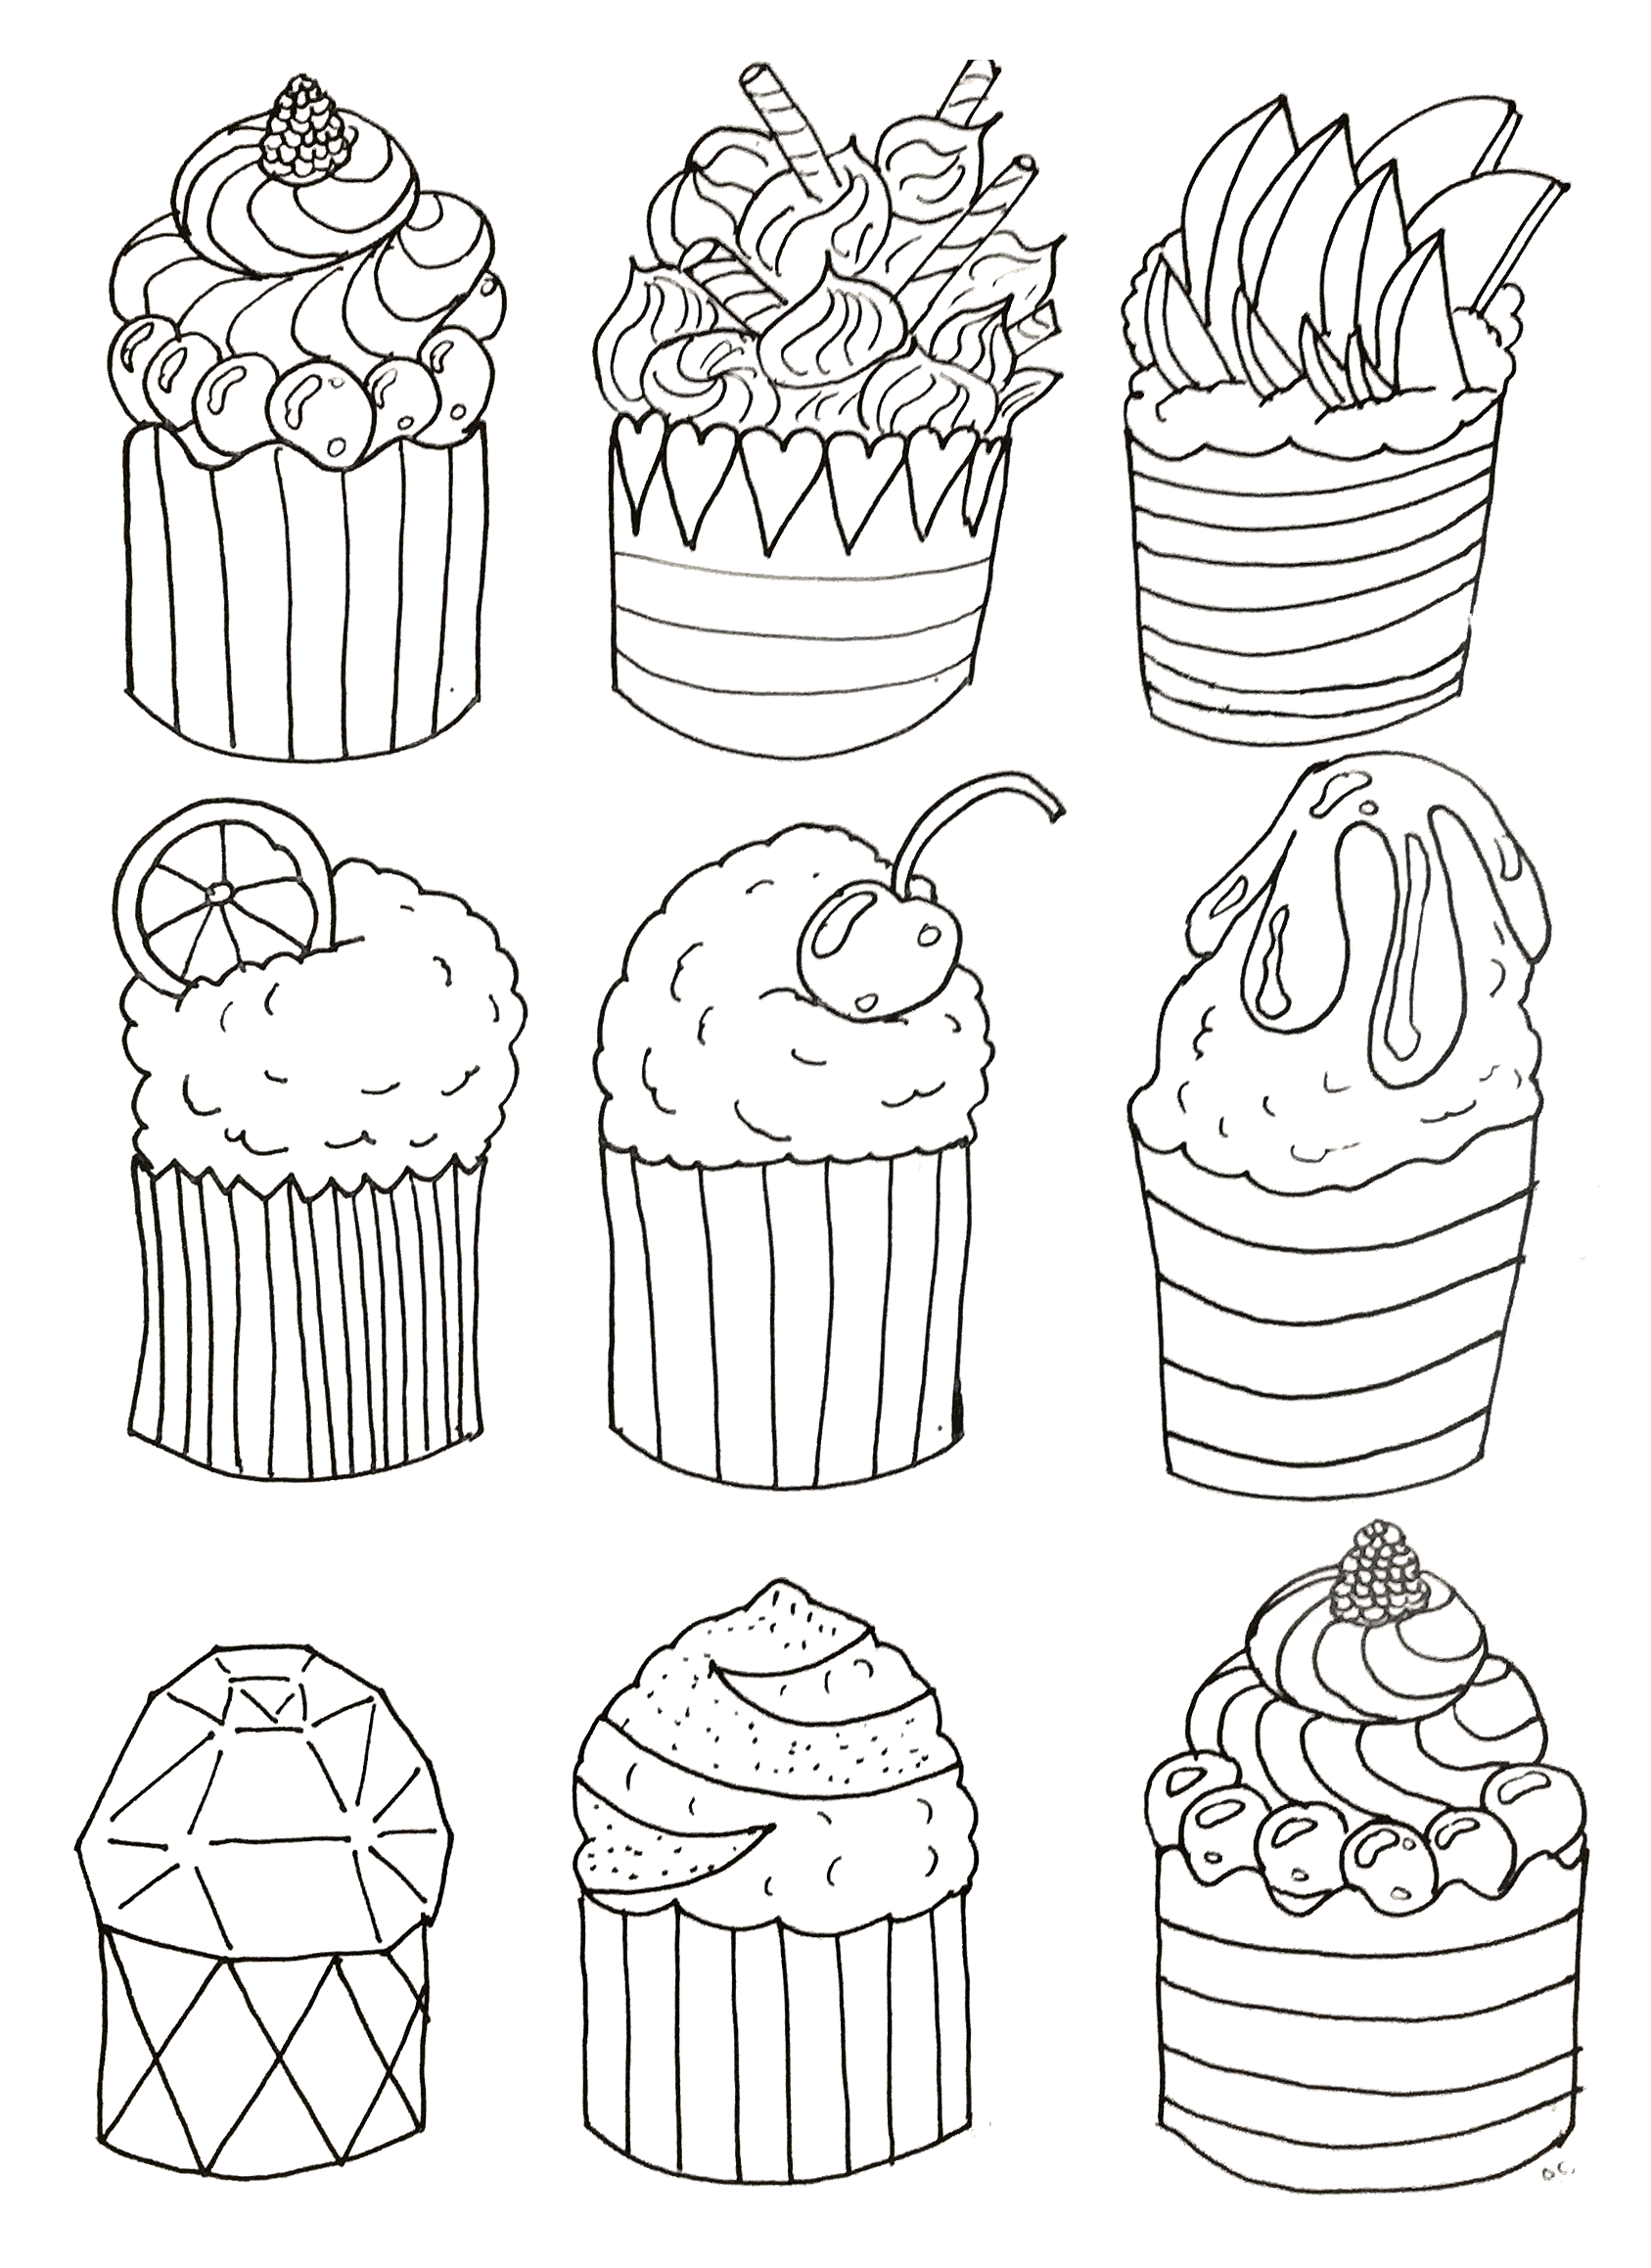 Cup Cake Coloring Pages For Adults Cupcake Coloring Pages Unicorn Coloring Pages Coloring Books